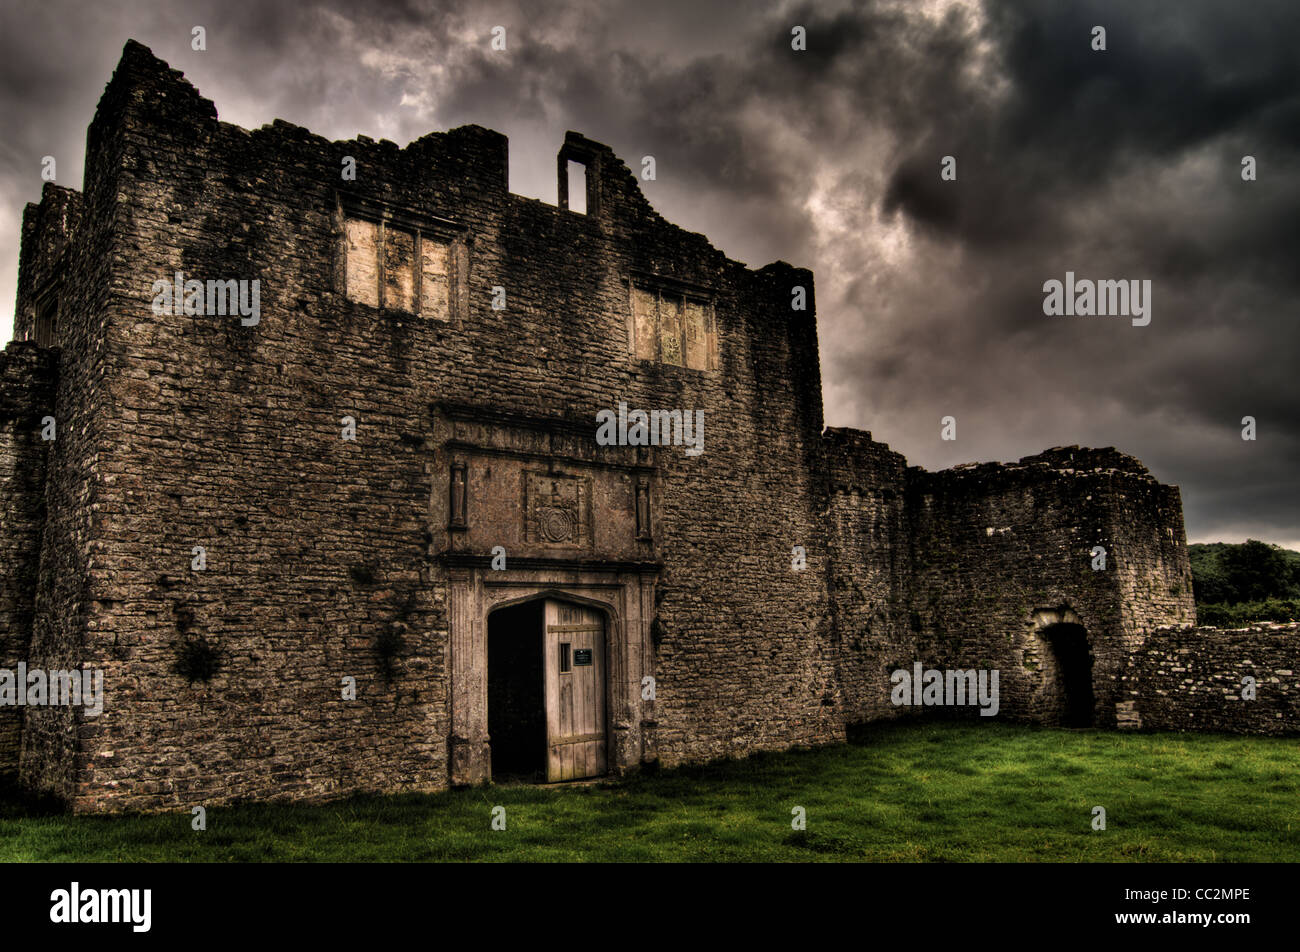 Beaupre Castle medieval ruins in Wales. - Stock Image